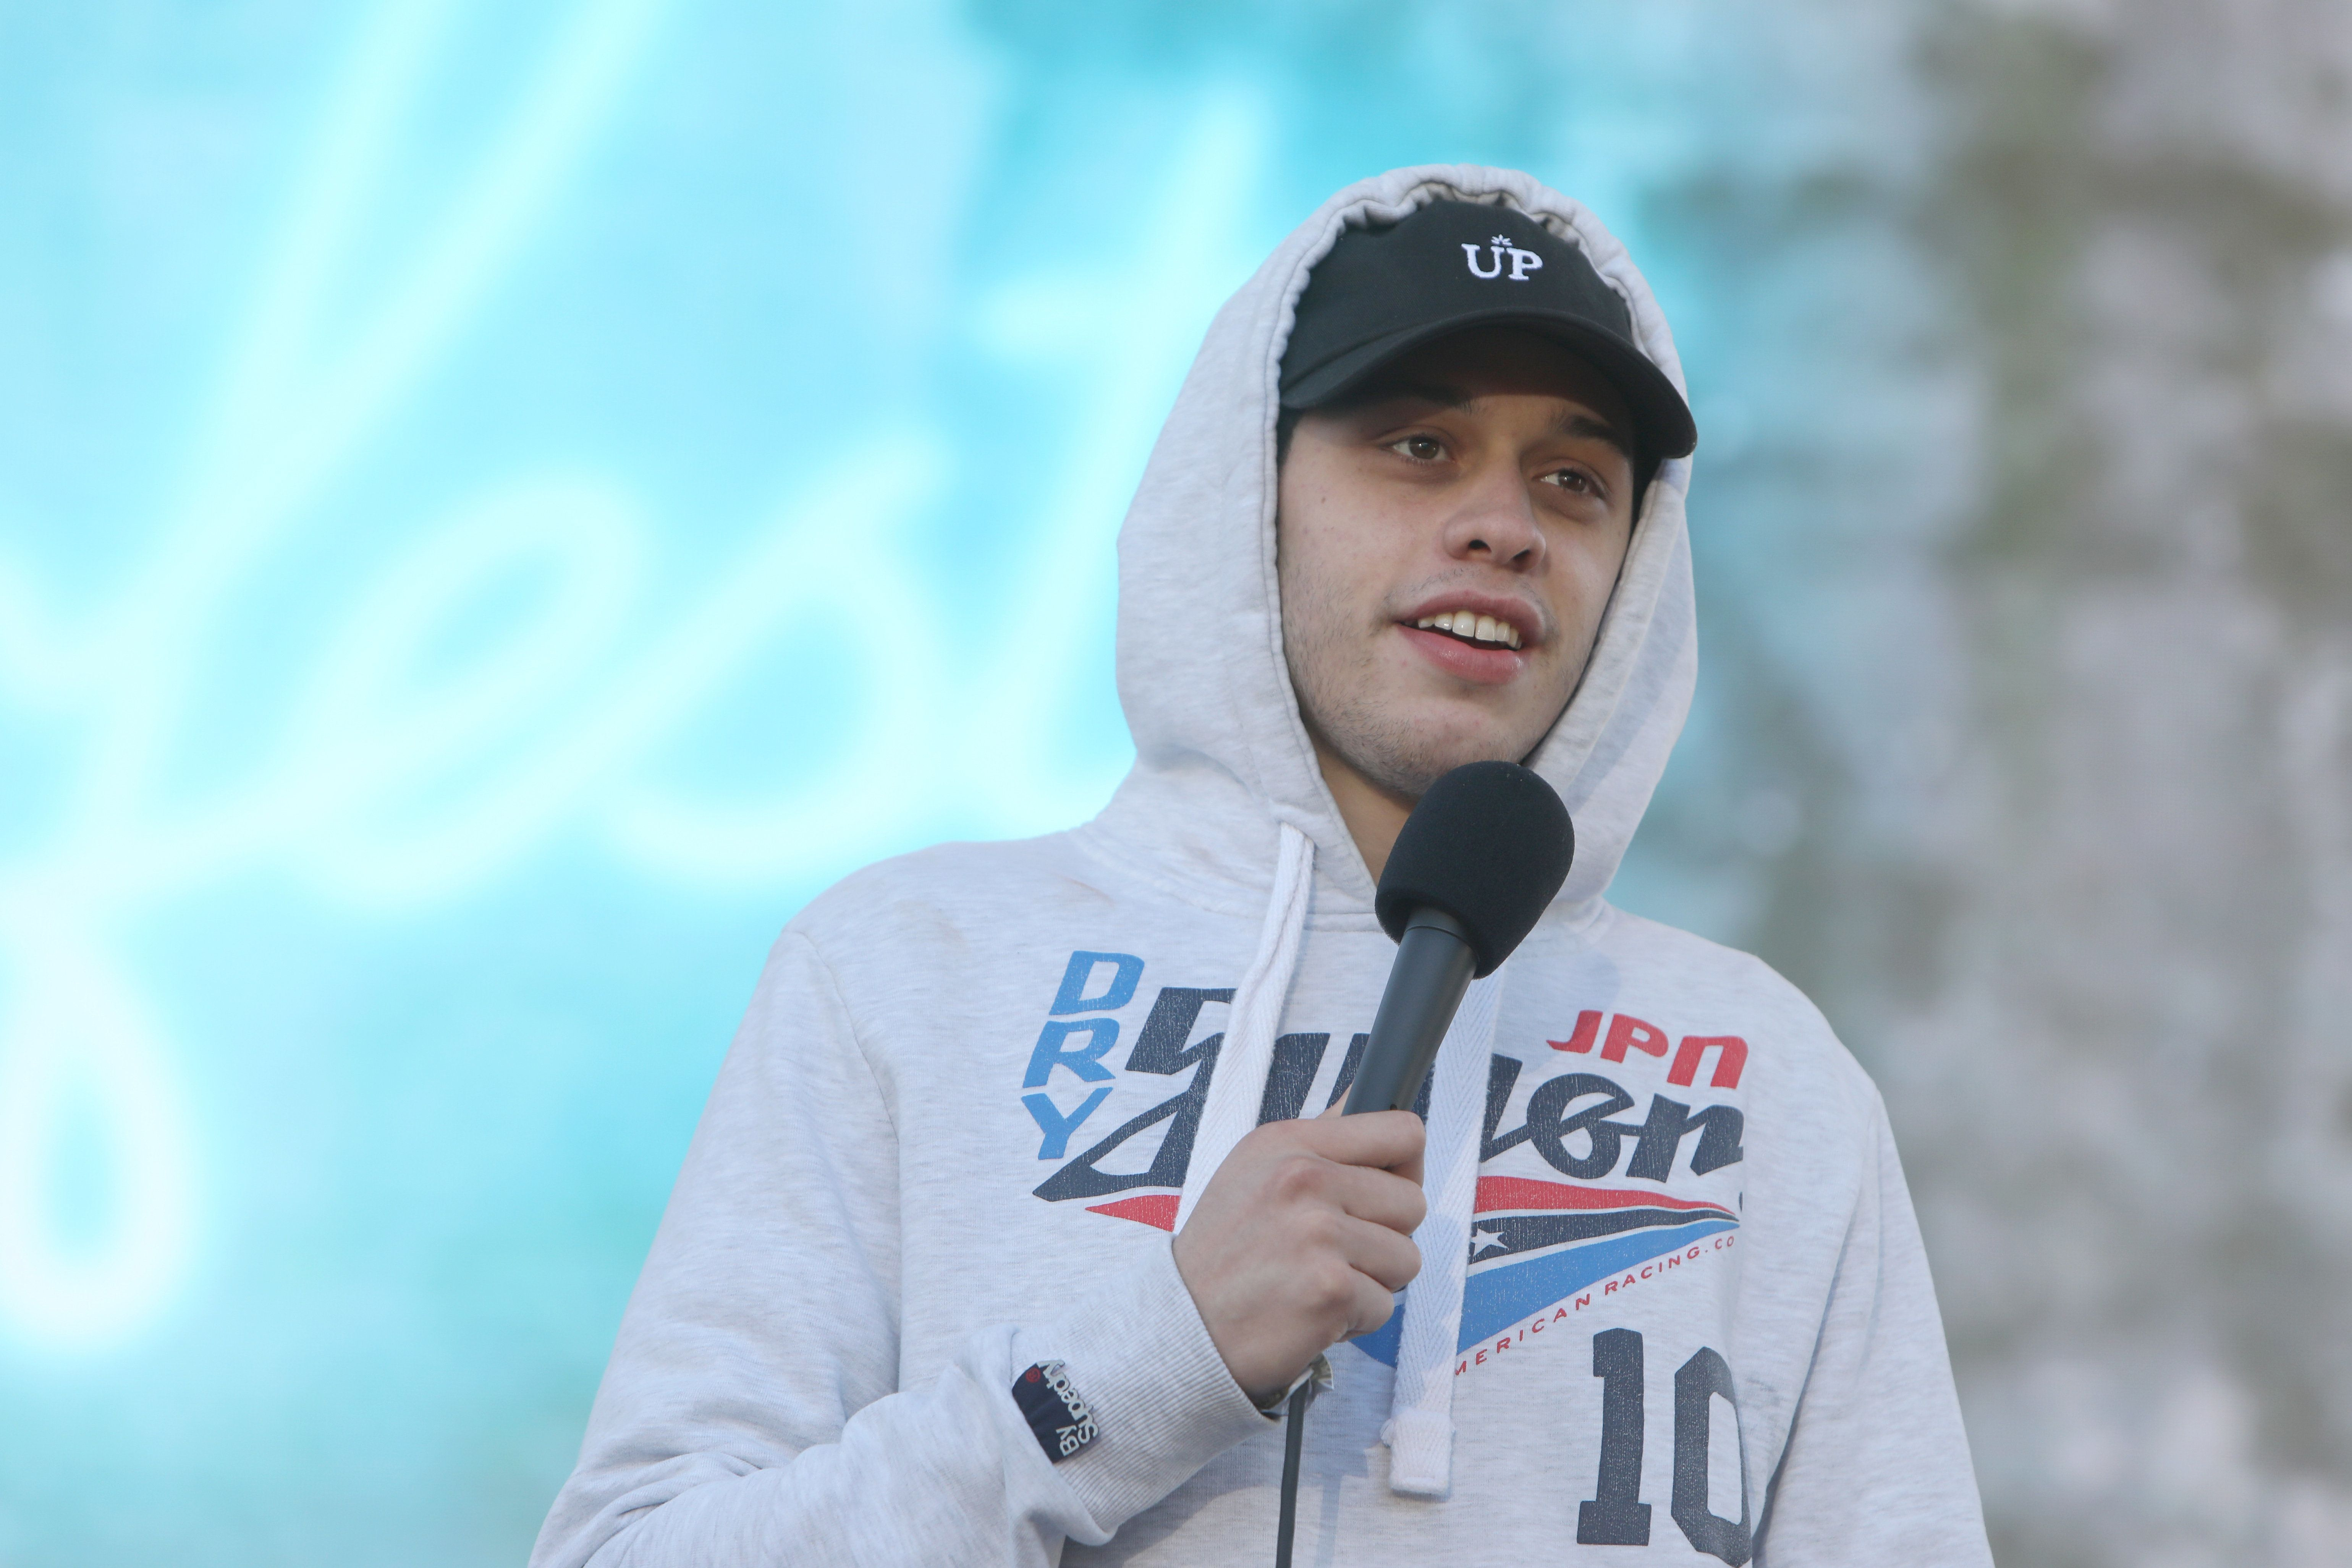 'SNL' Star Pete Davidson Brings Awareness To An Uncommon Mental Health